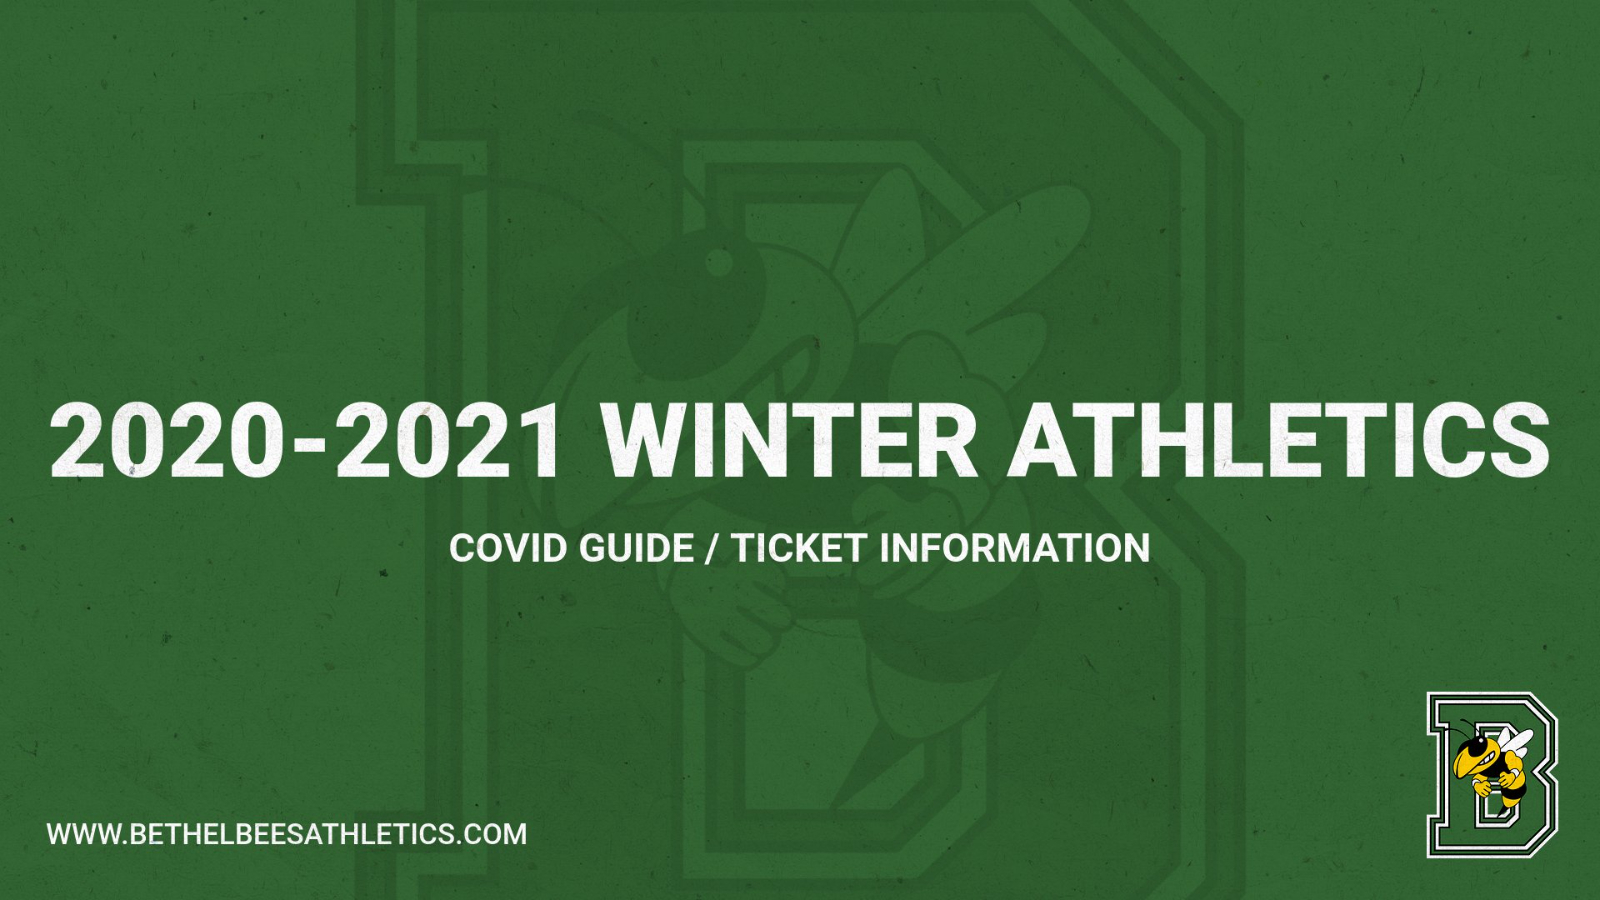 Winter Spectator Guide / Ticket Information